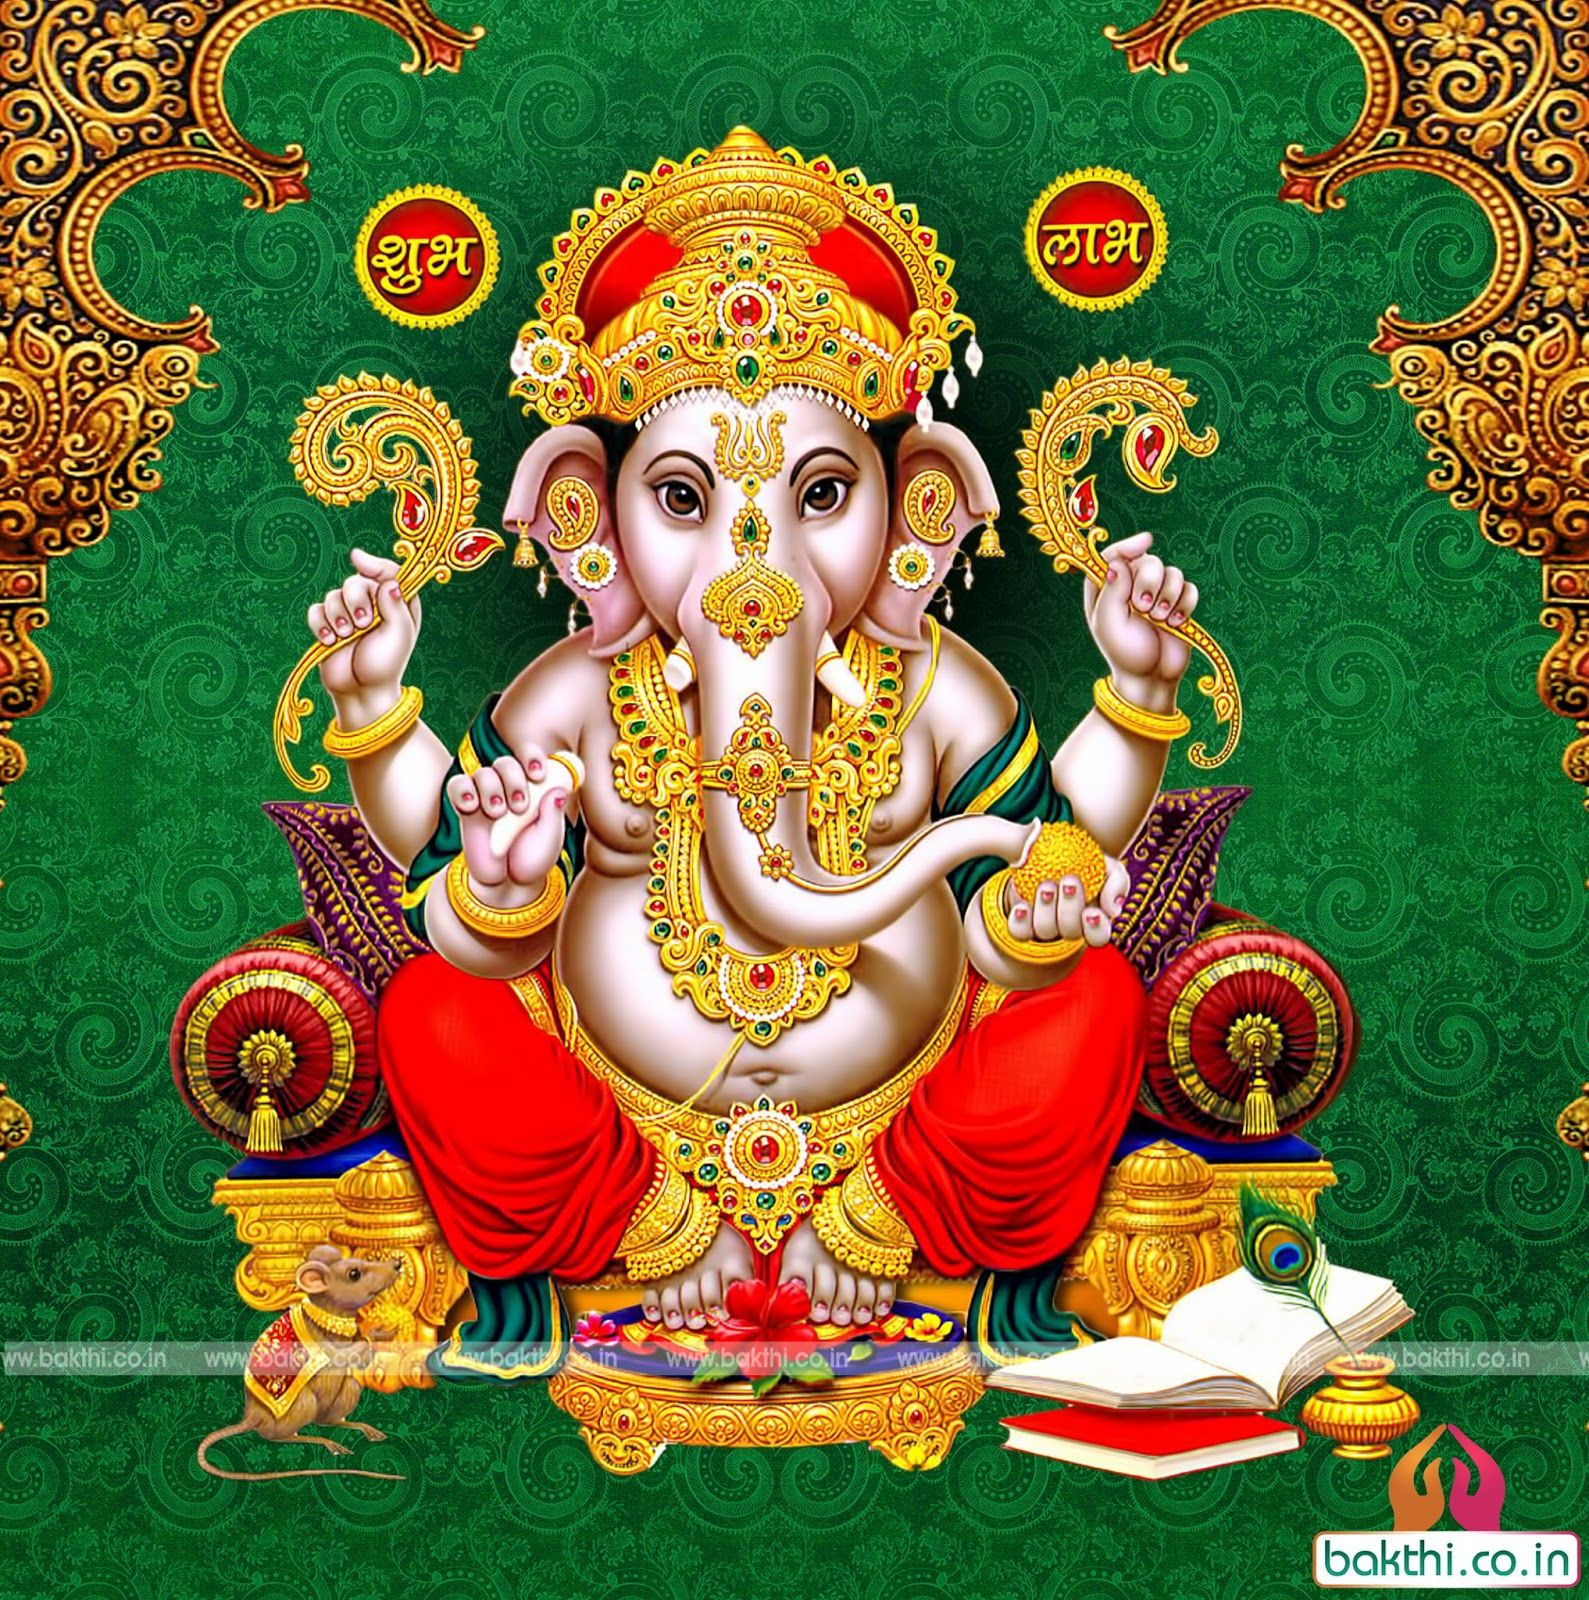 Lord Ganesha Hd Images Free Downloads For Wedding Cards Bakthi